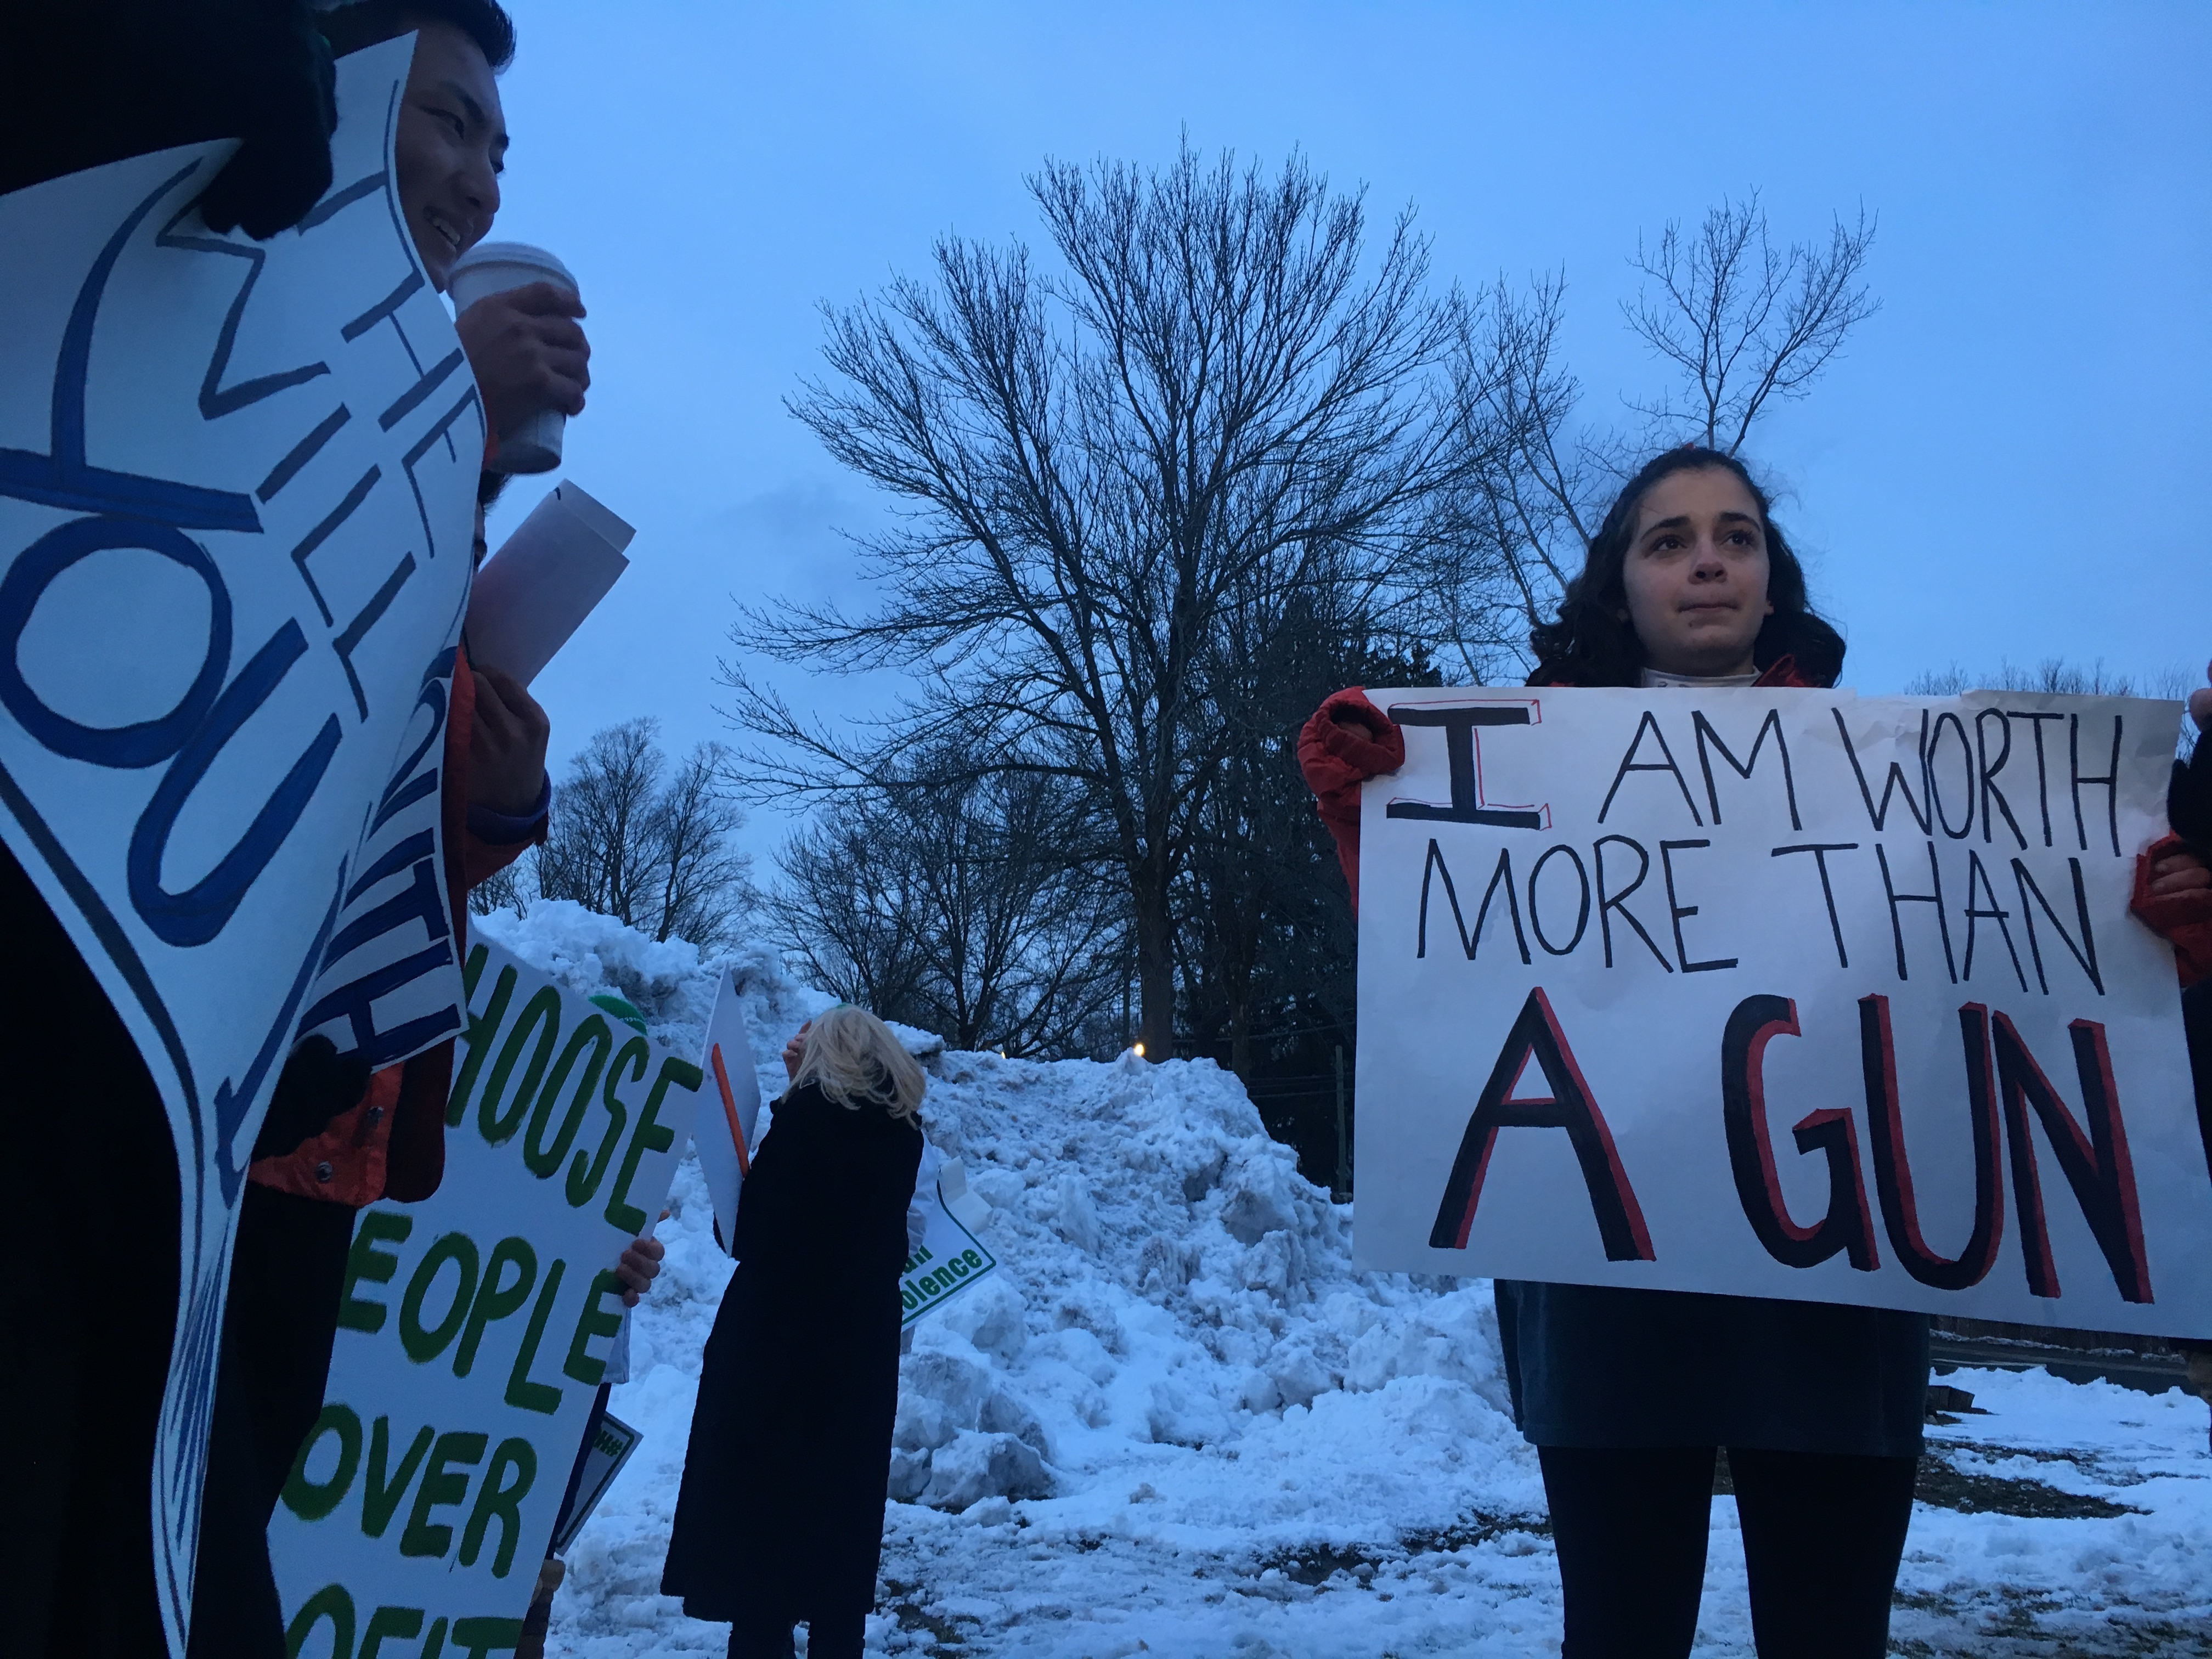 CT students join nationwide protest, demand end to gun violence